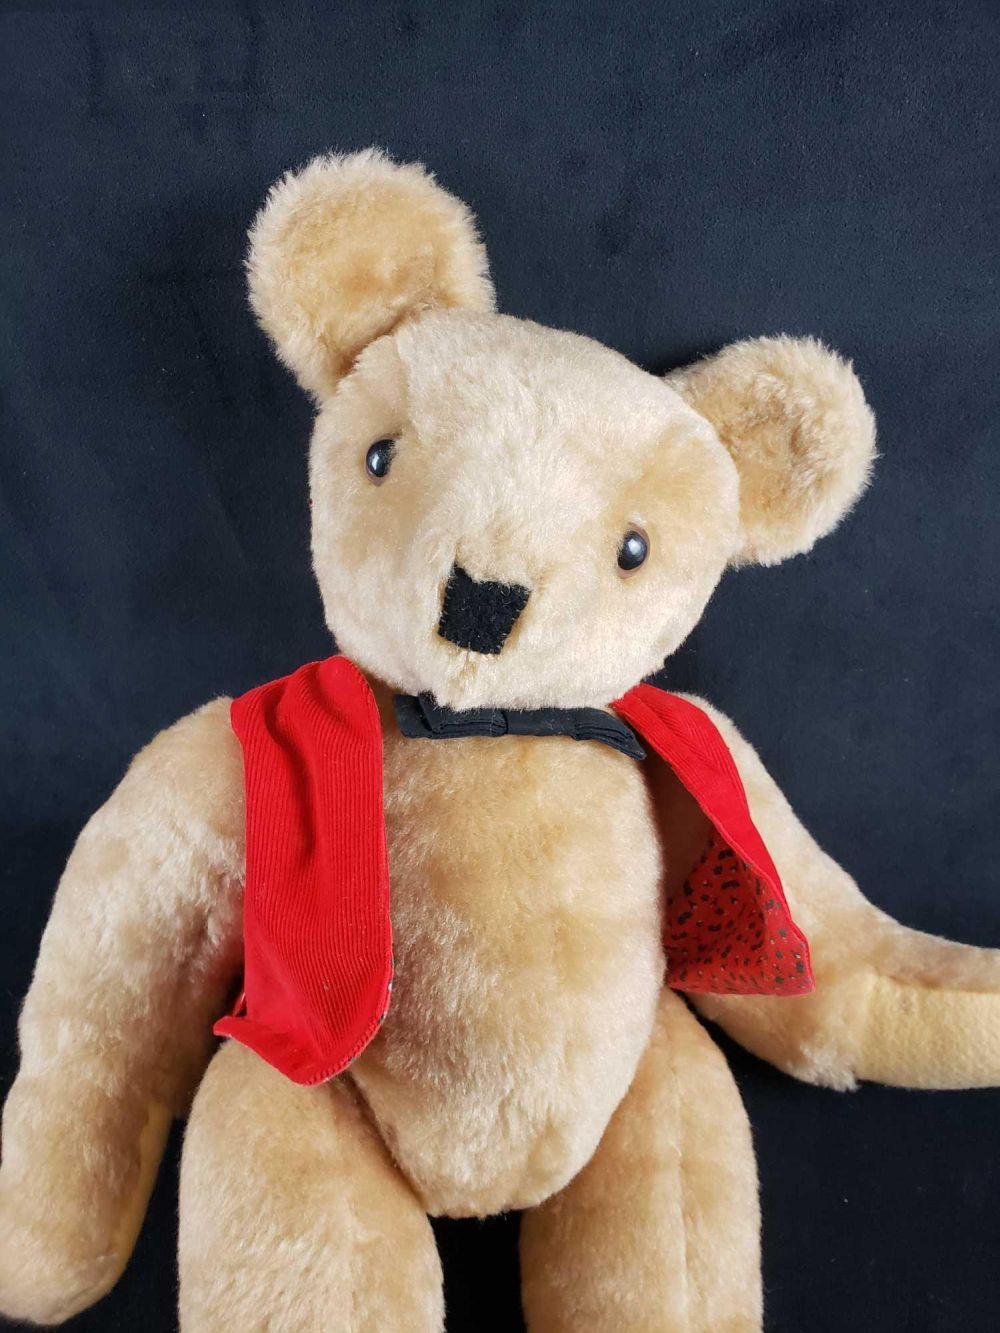 Lot 1038: Teddy Bear with Bow Tie and Red Vest